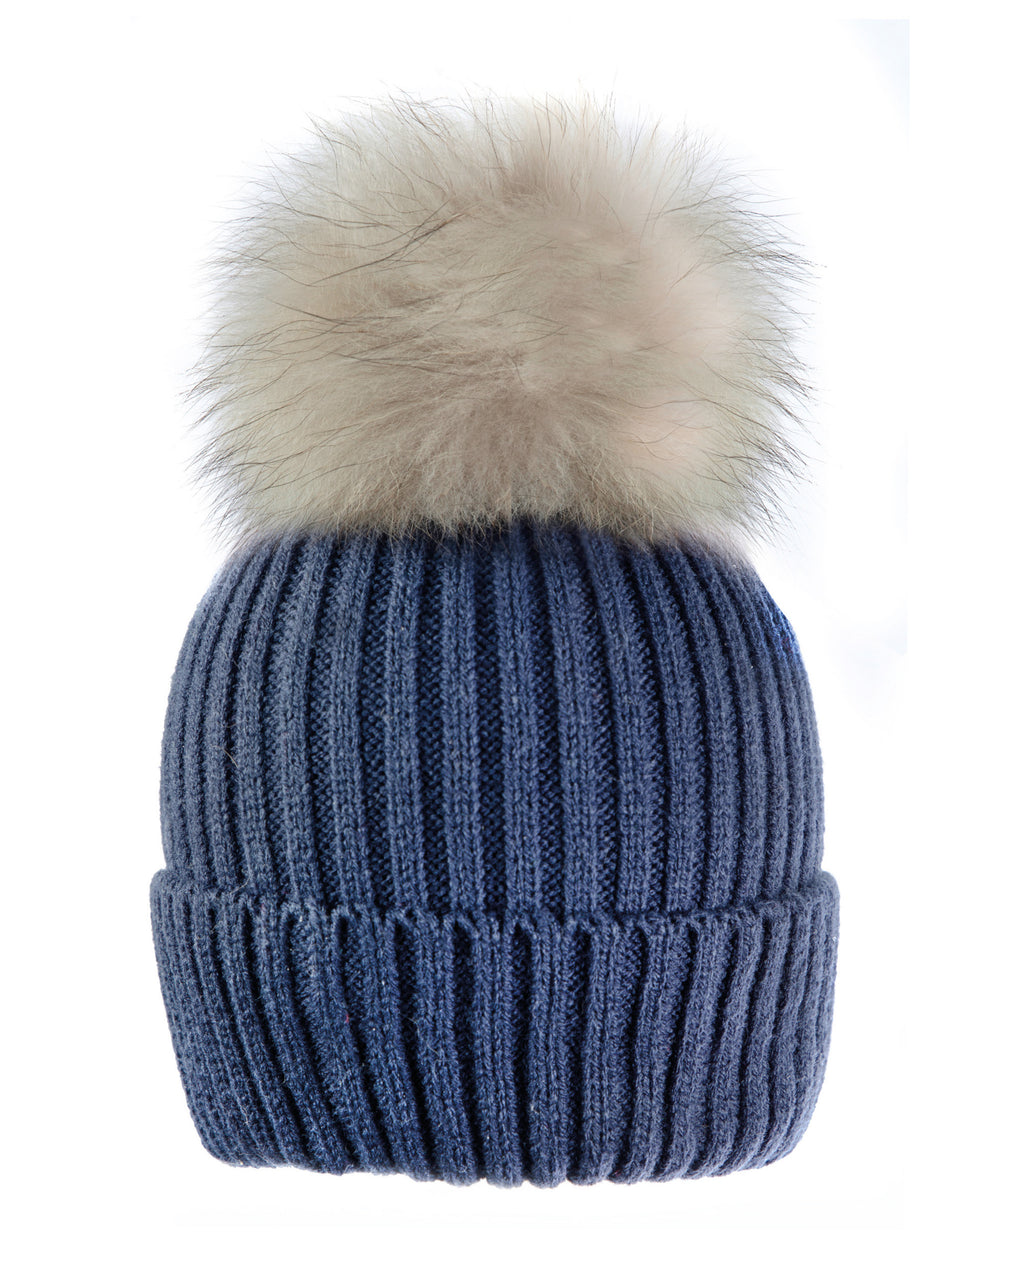 Blue/Biege Beanie Hat with exclusive Pom Pom